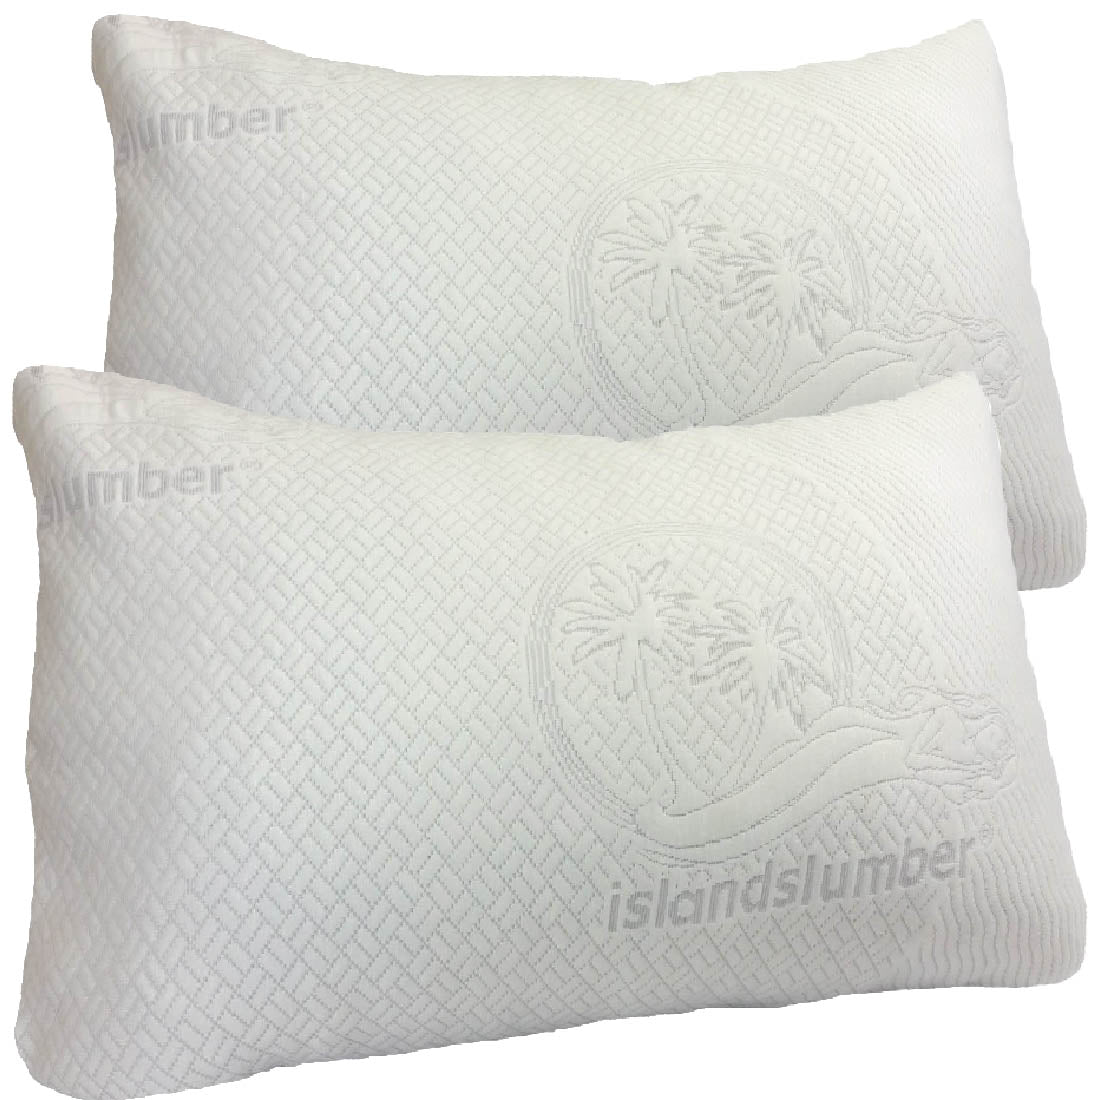 Adjustable Bamboo Memory Foam Pillow